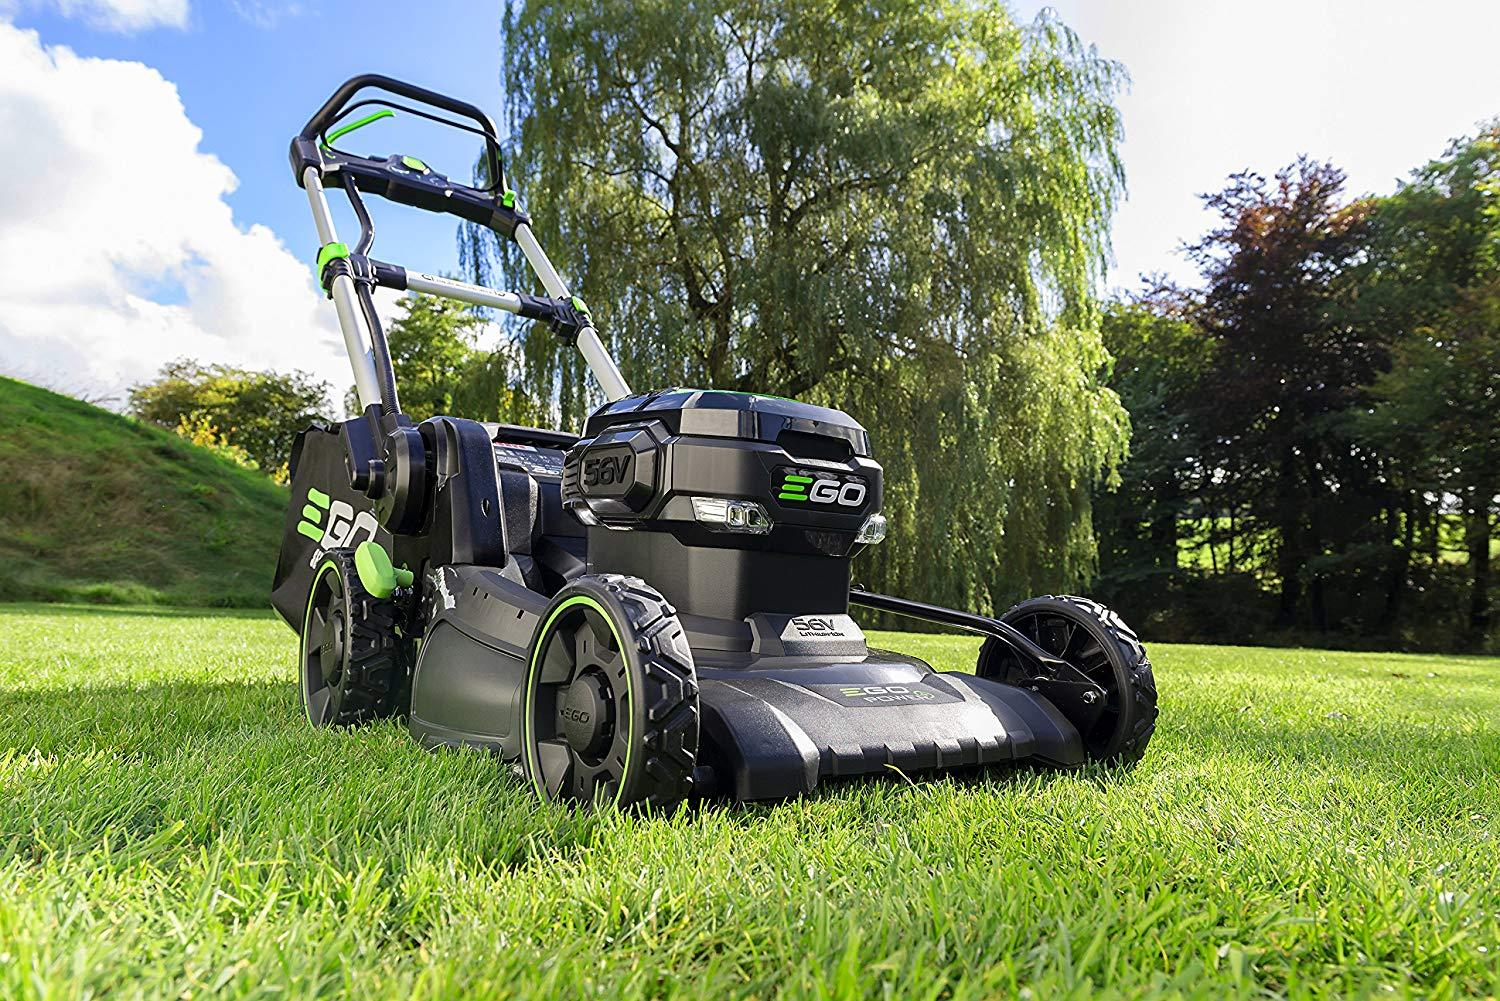 EGO Lawn Mower Review: An Excellent Battery Powered Alternative 2021